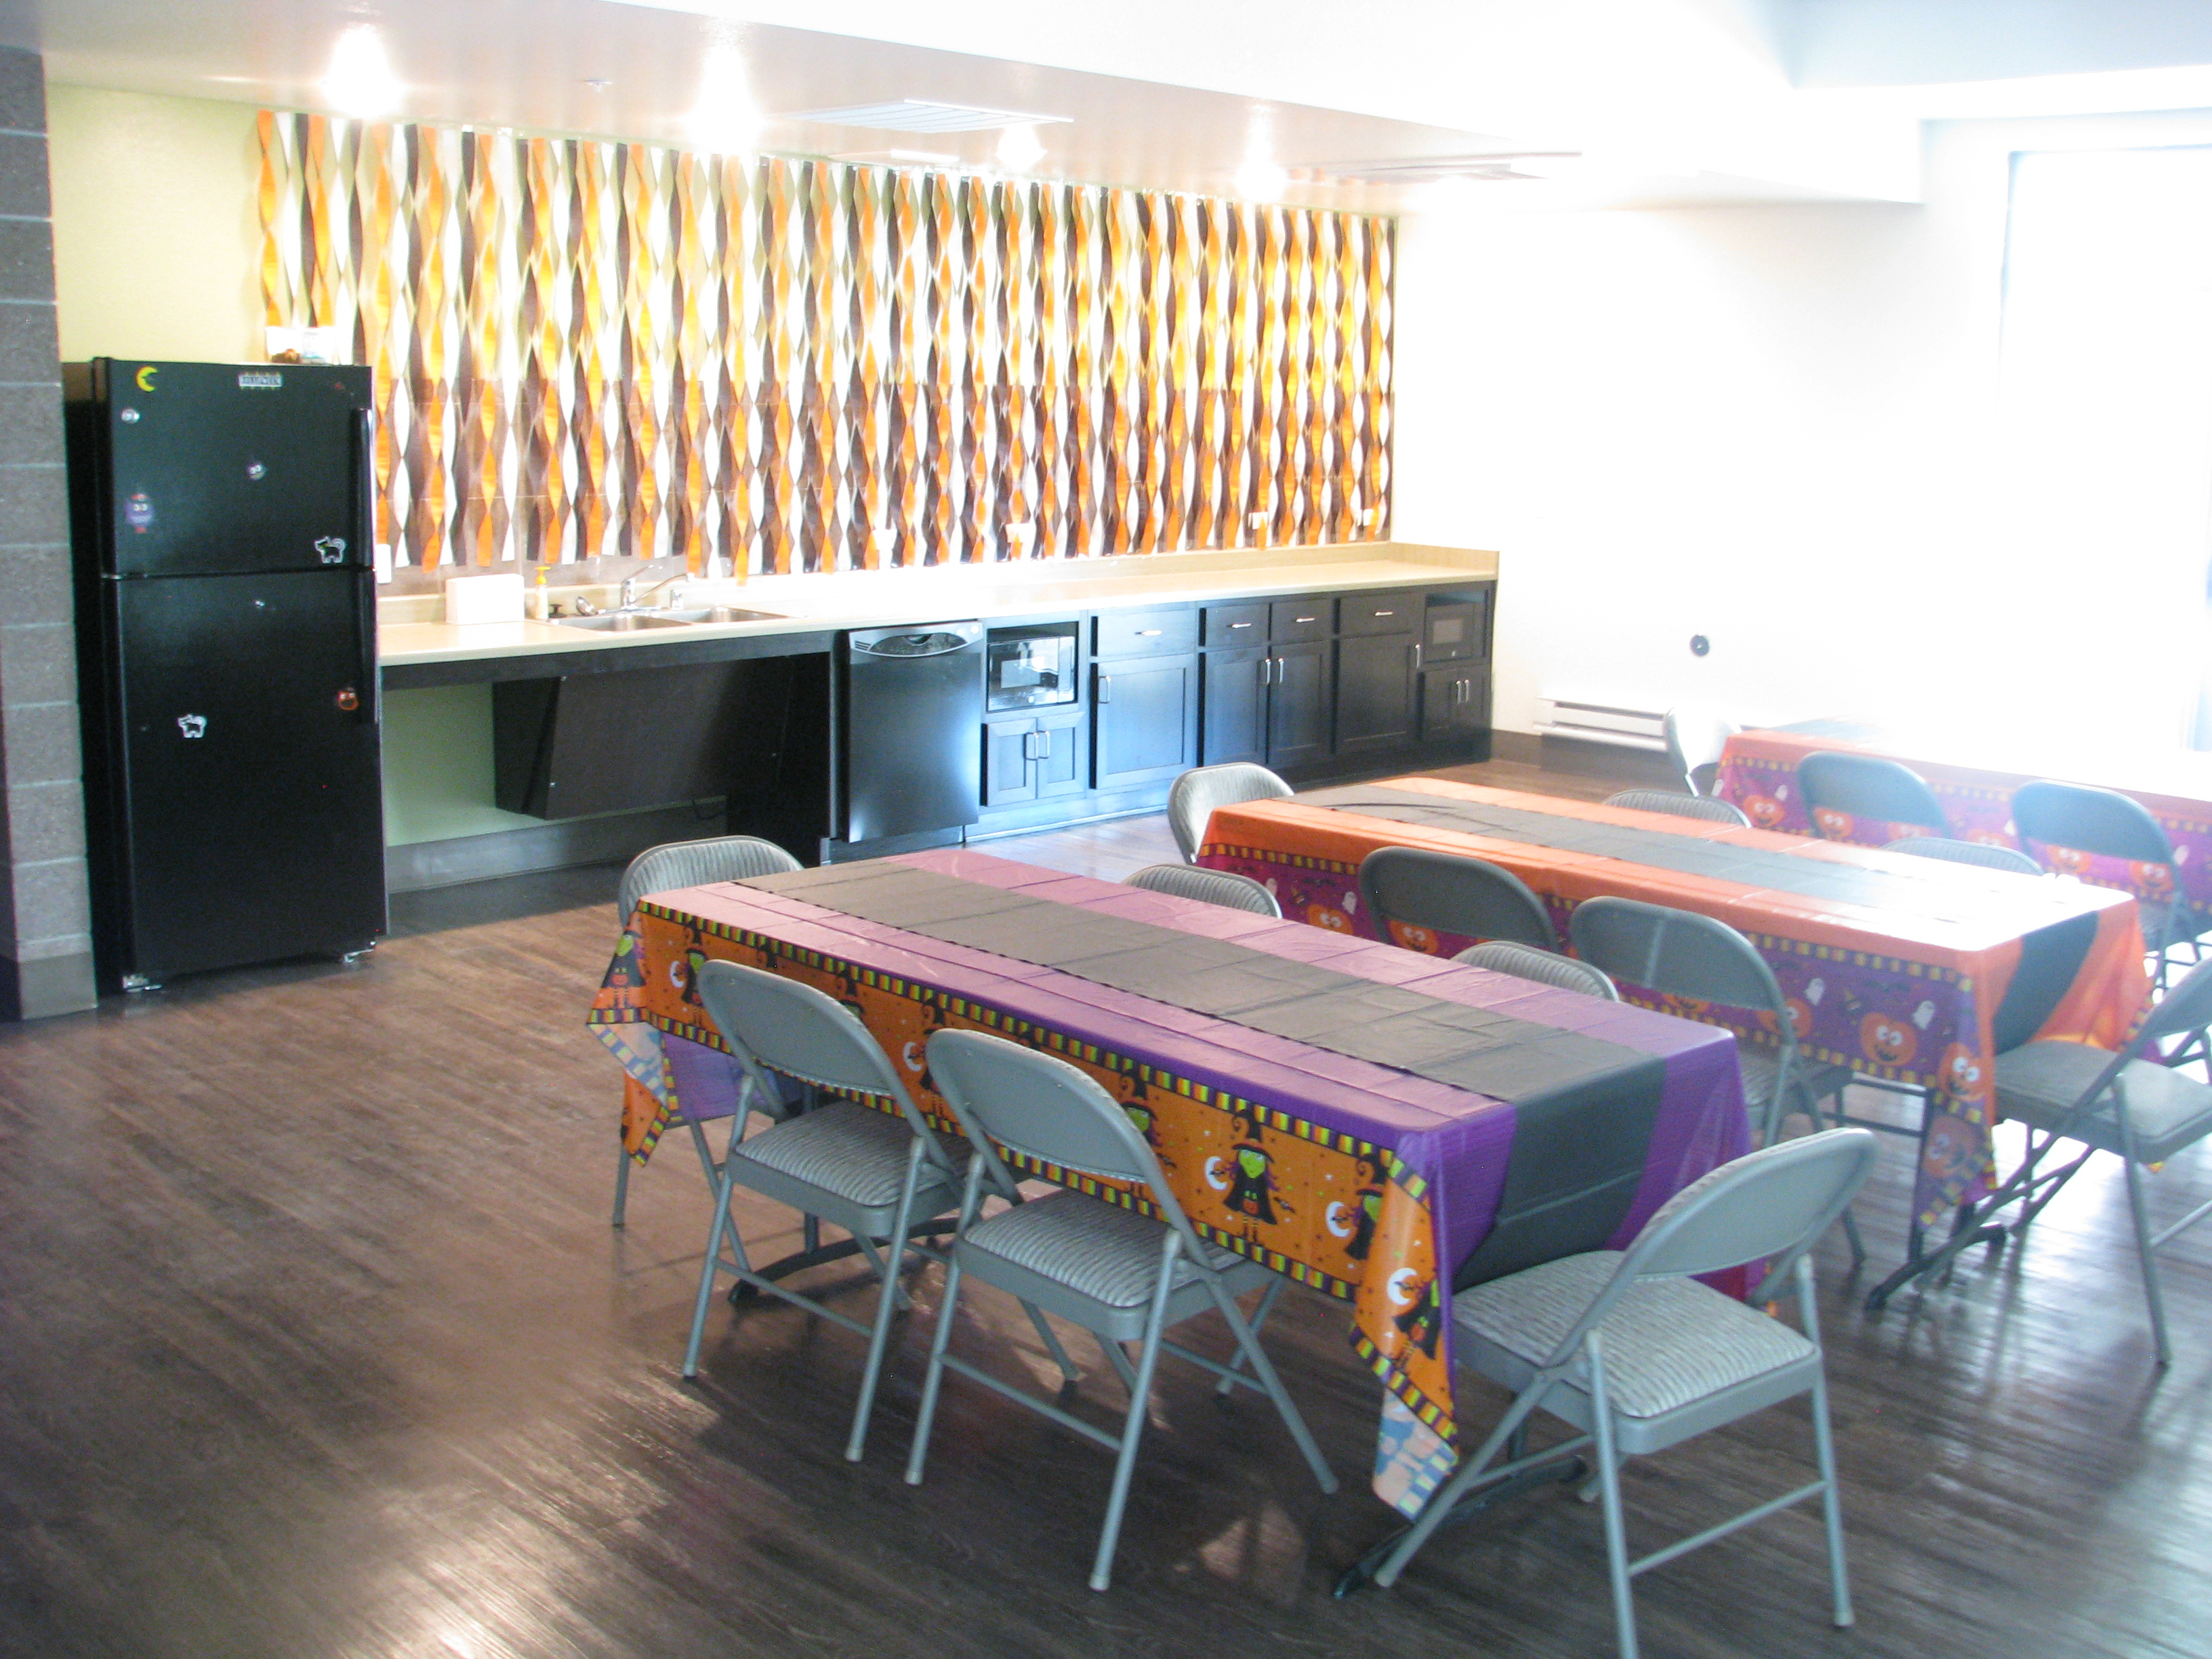 Photograph of a room with a kitchenette and several tables and chairs with Halloween-themed paper tablecloths.